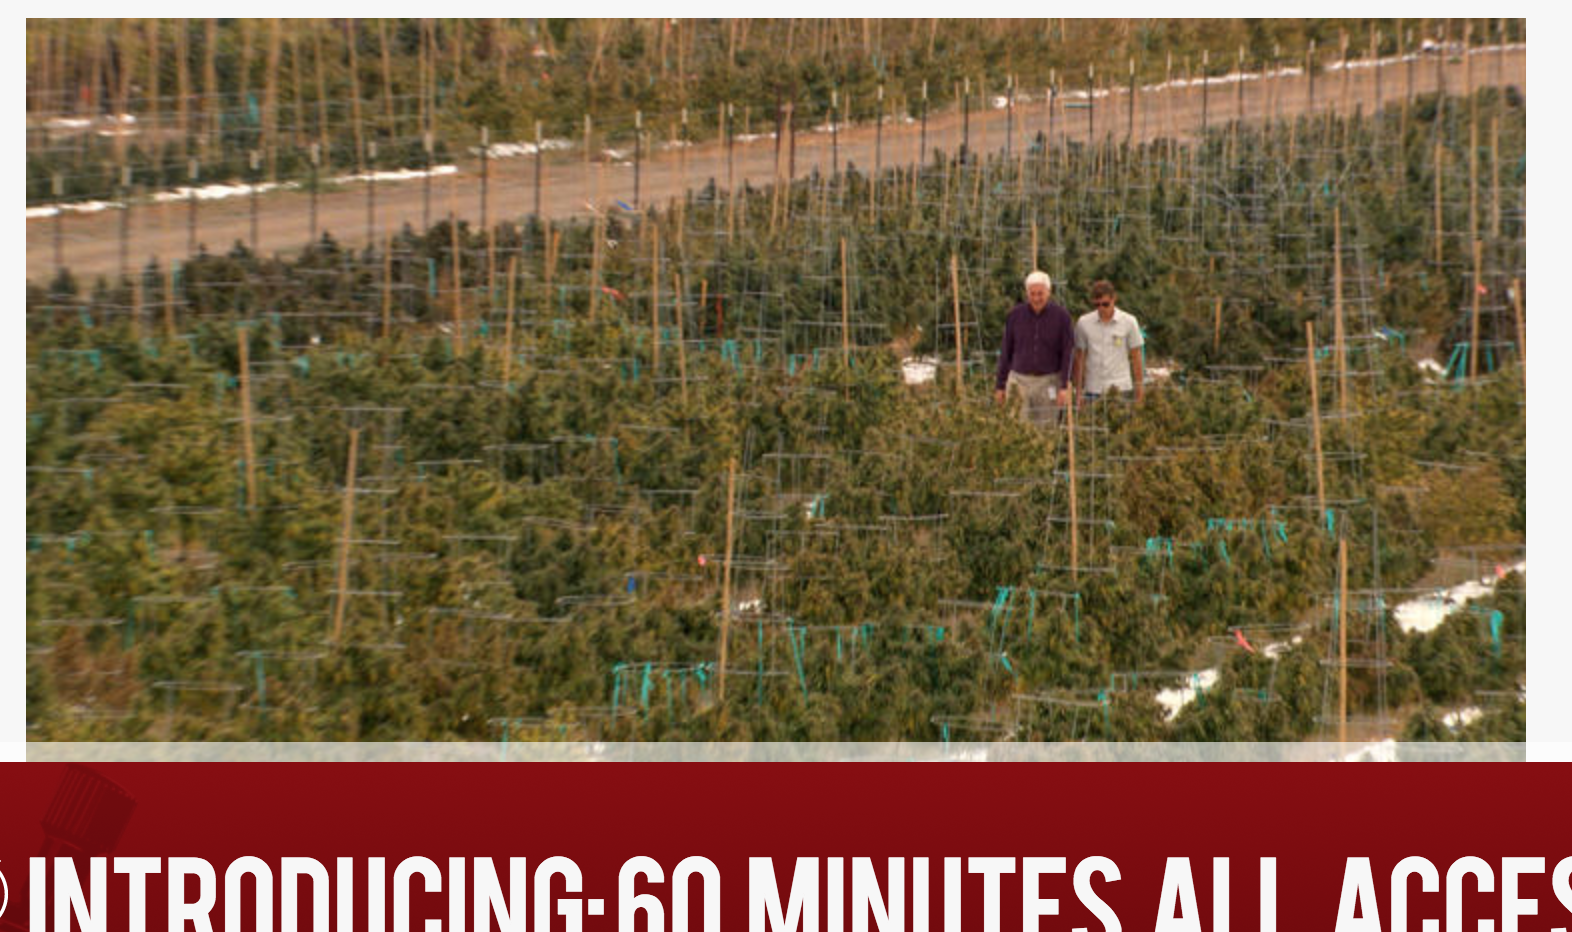 60 Minutes - Interview with Jonathan Lapook on site of Los Sueños Farms. - 2016